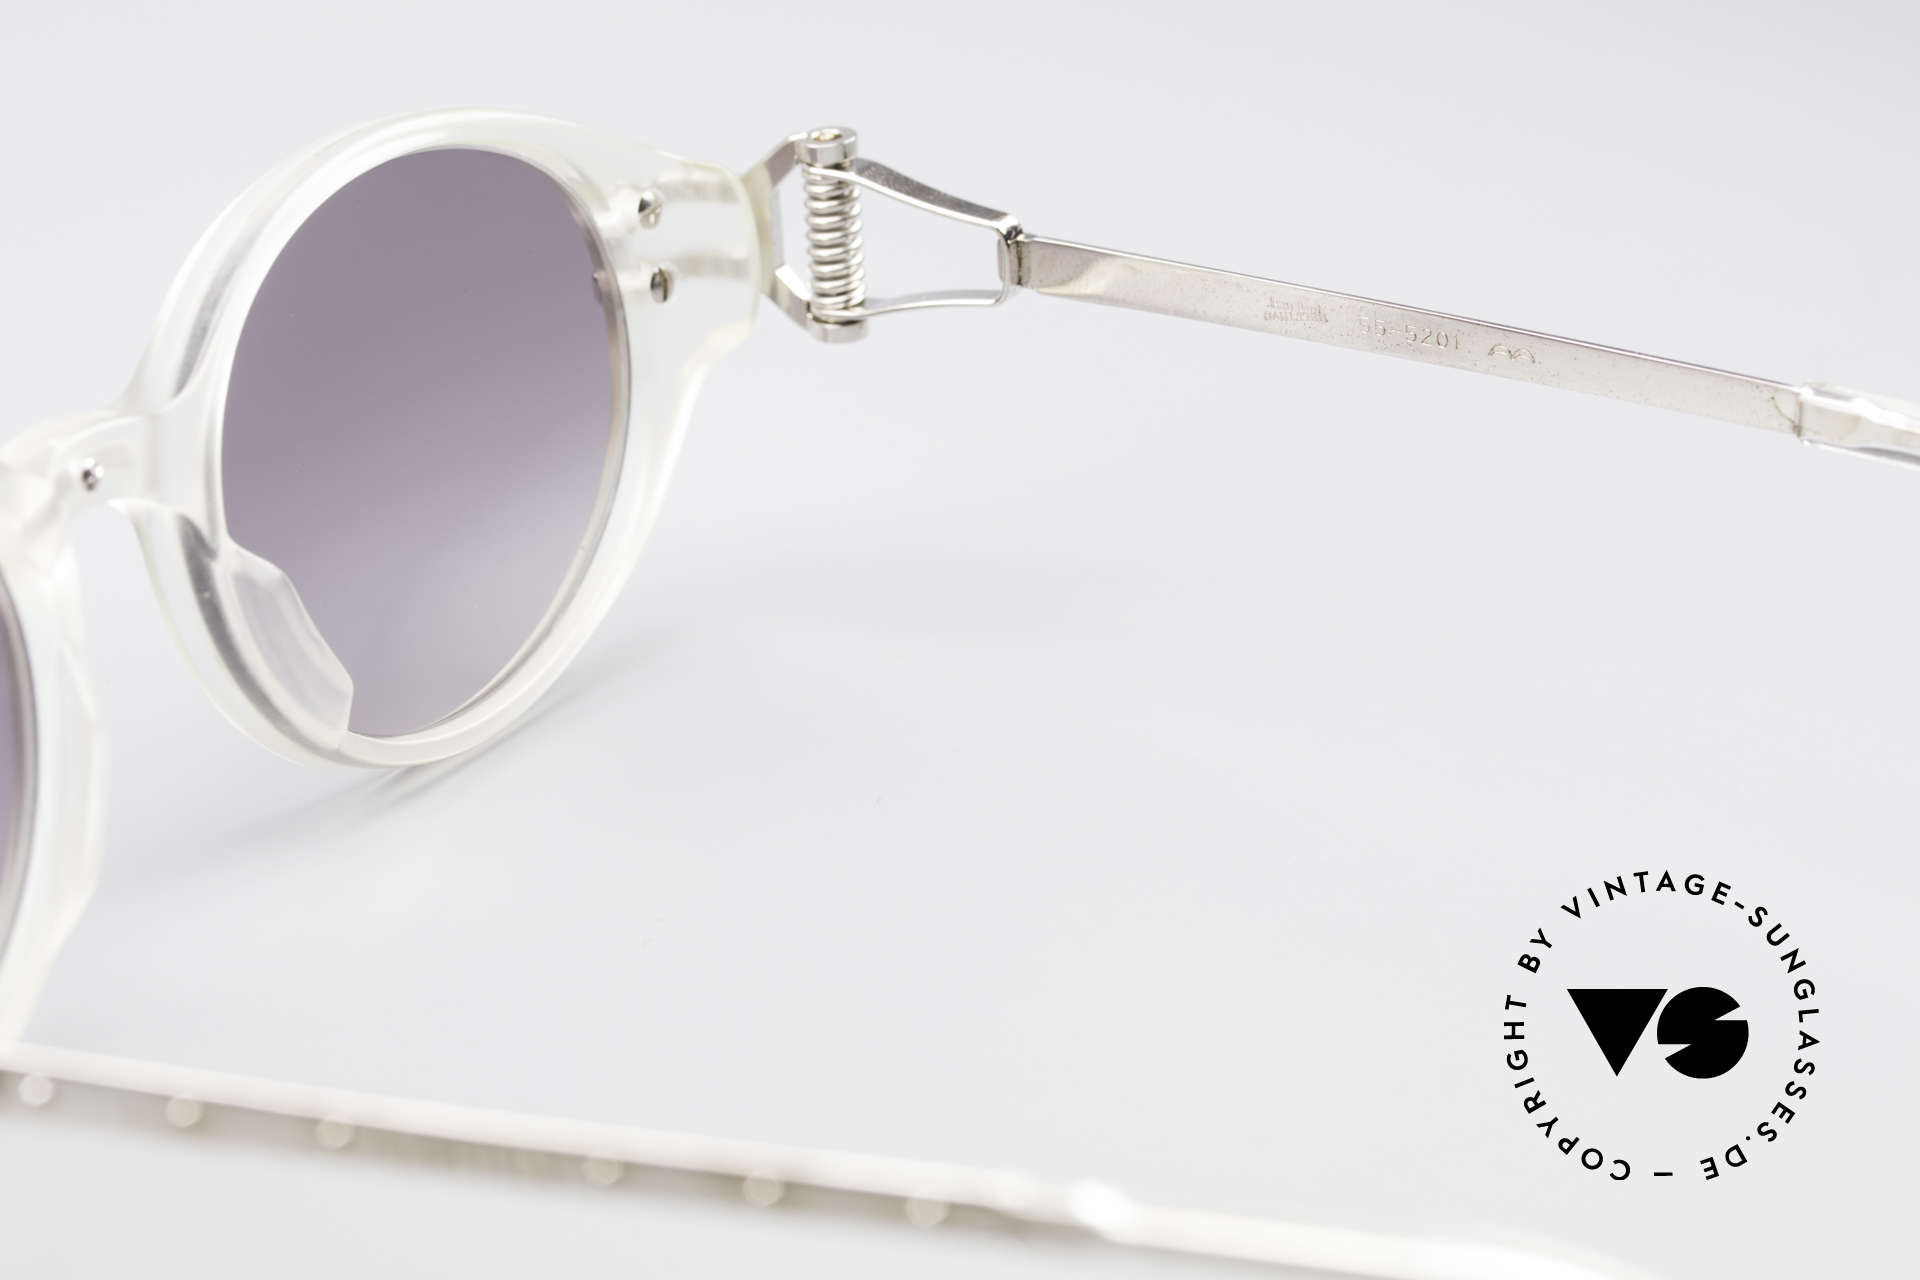 Jean Paul Gaultier 55-5201 90's Steampunk Shades, NO retro fashion, but a genuine original from 1996!, Made for Men and Women